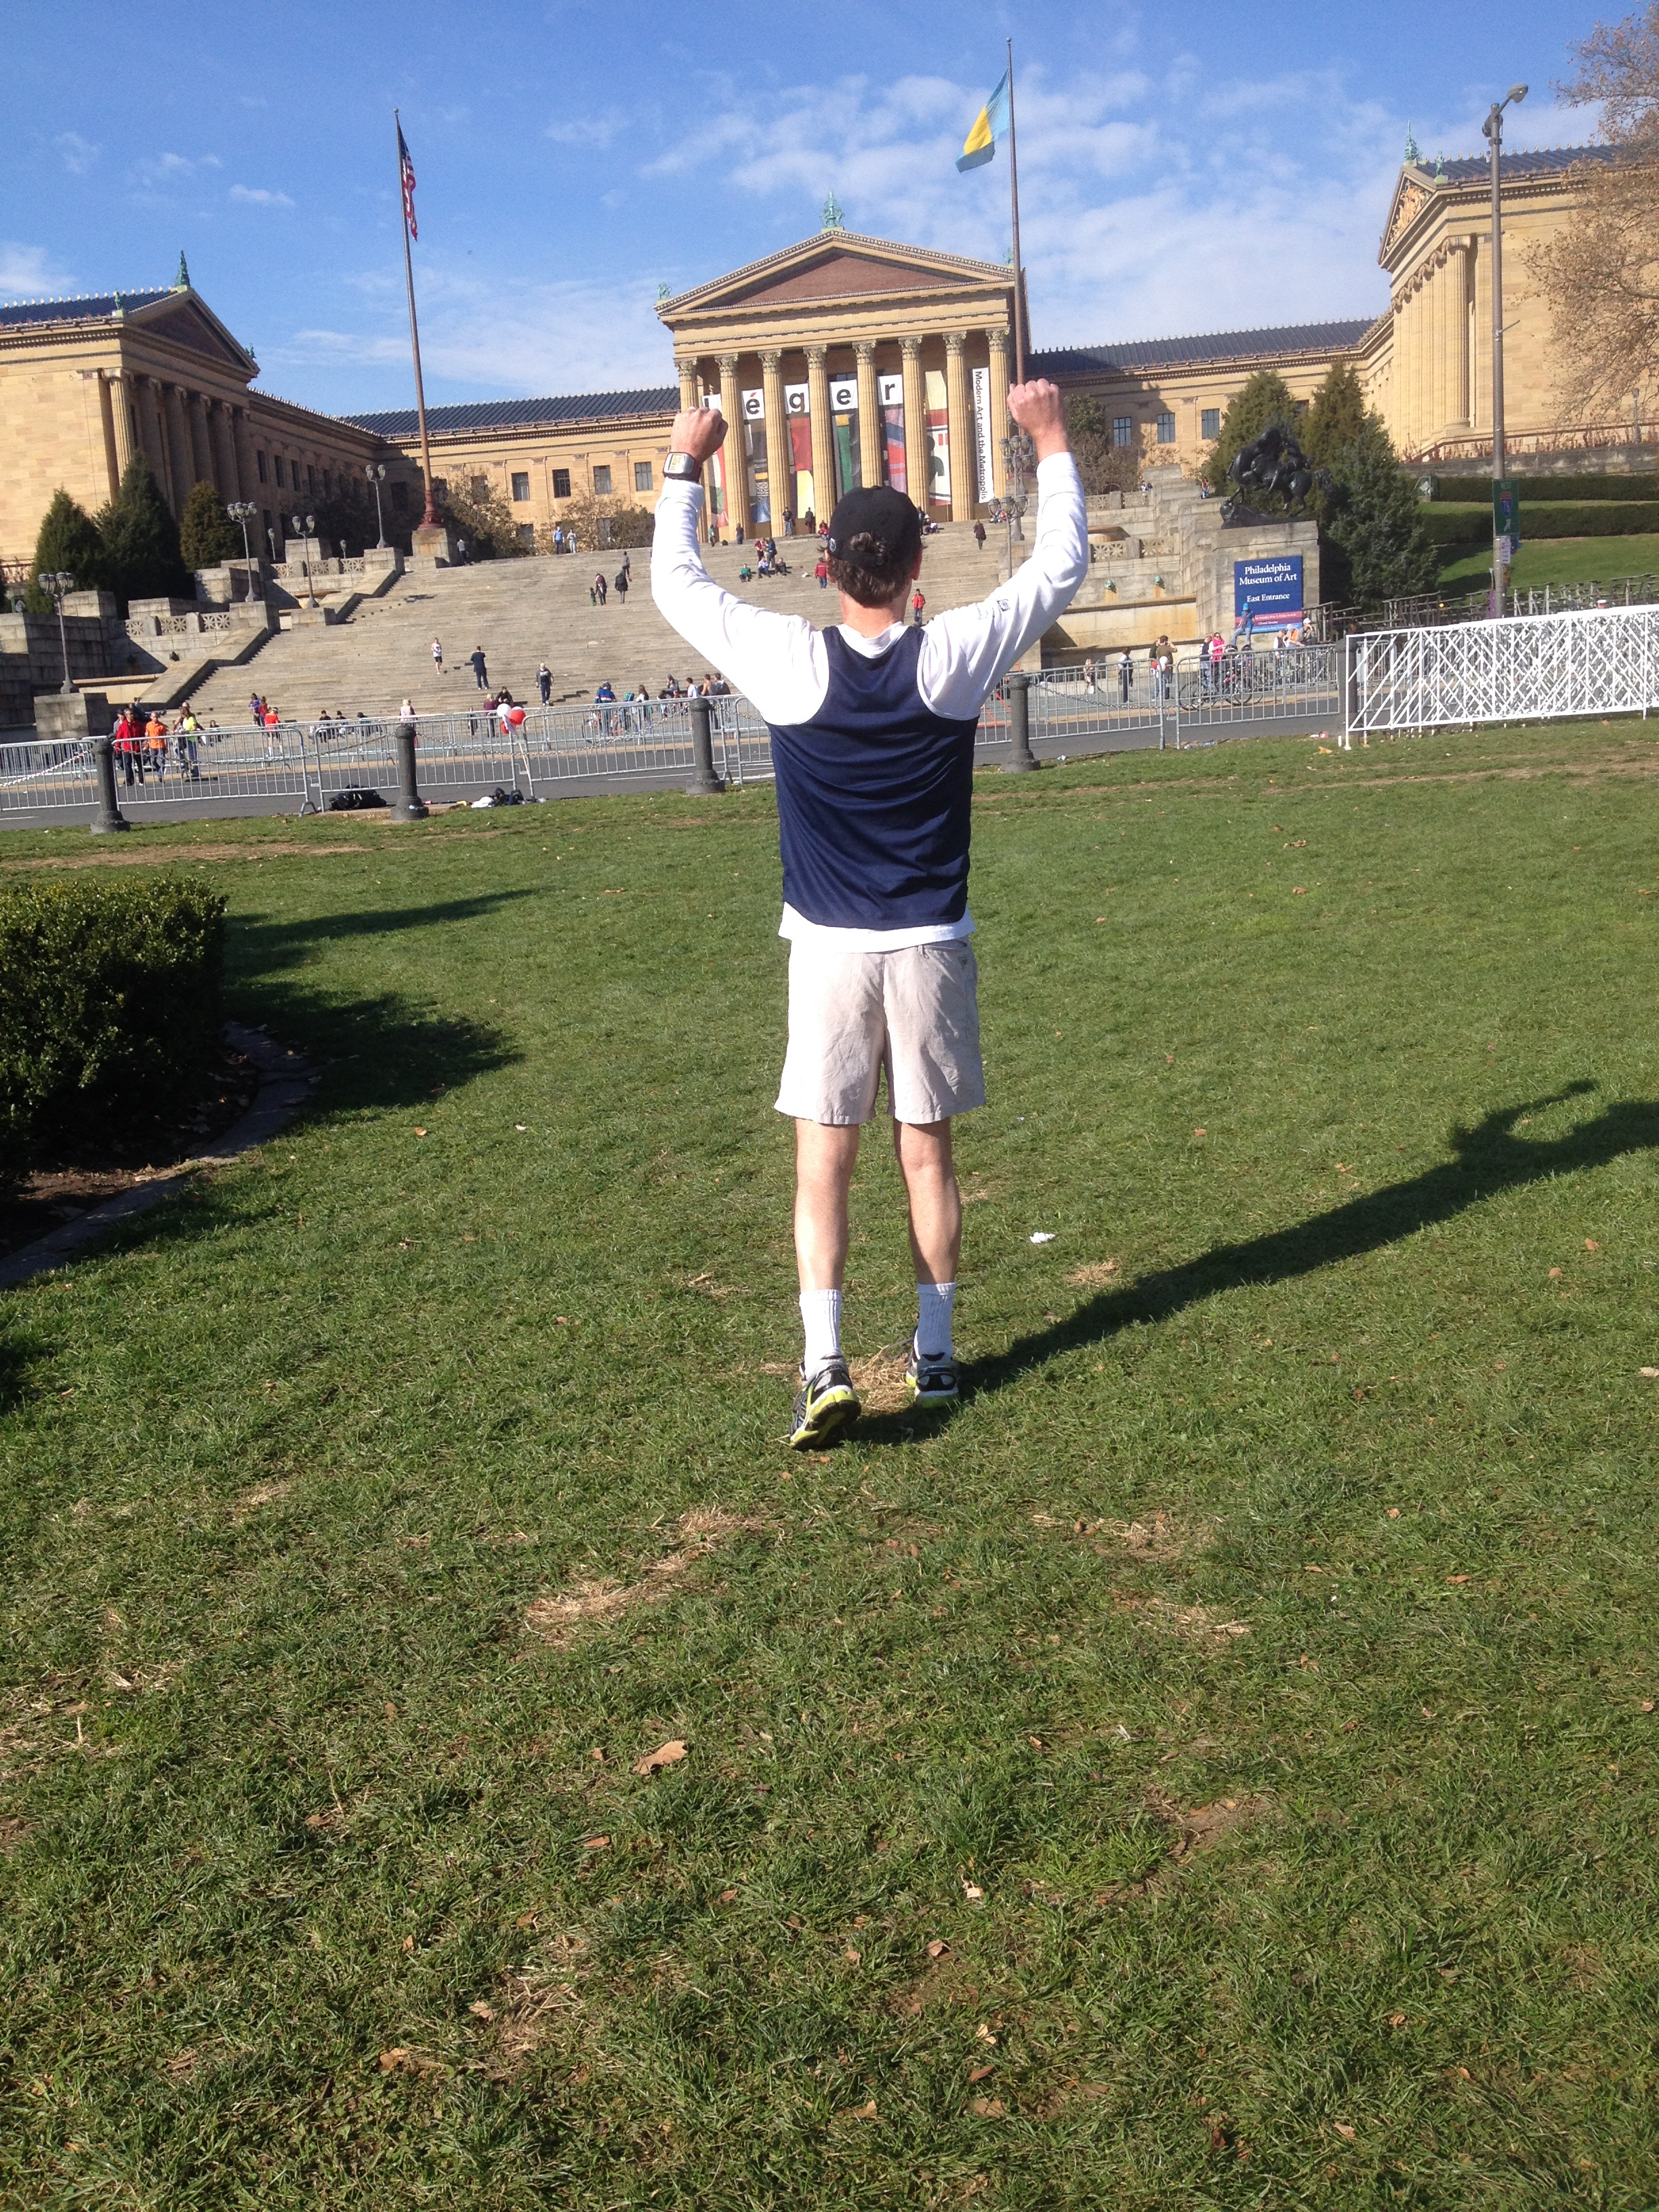 At the Rocky Steps